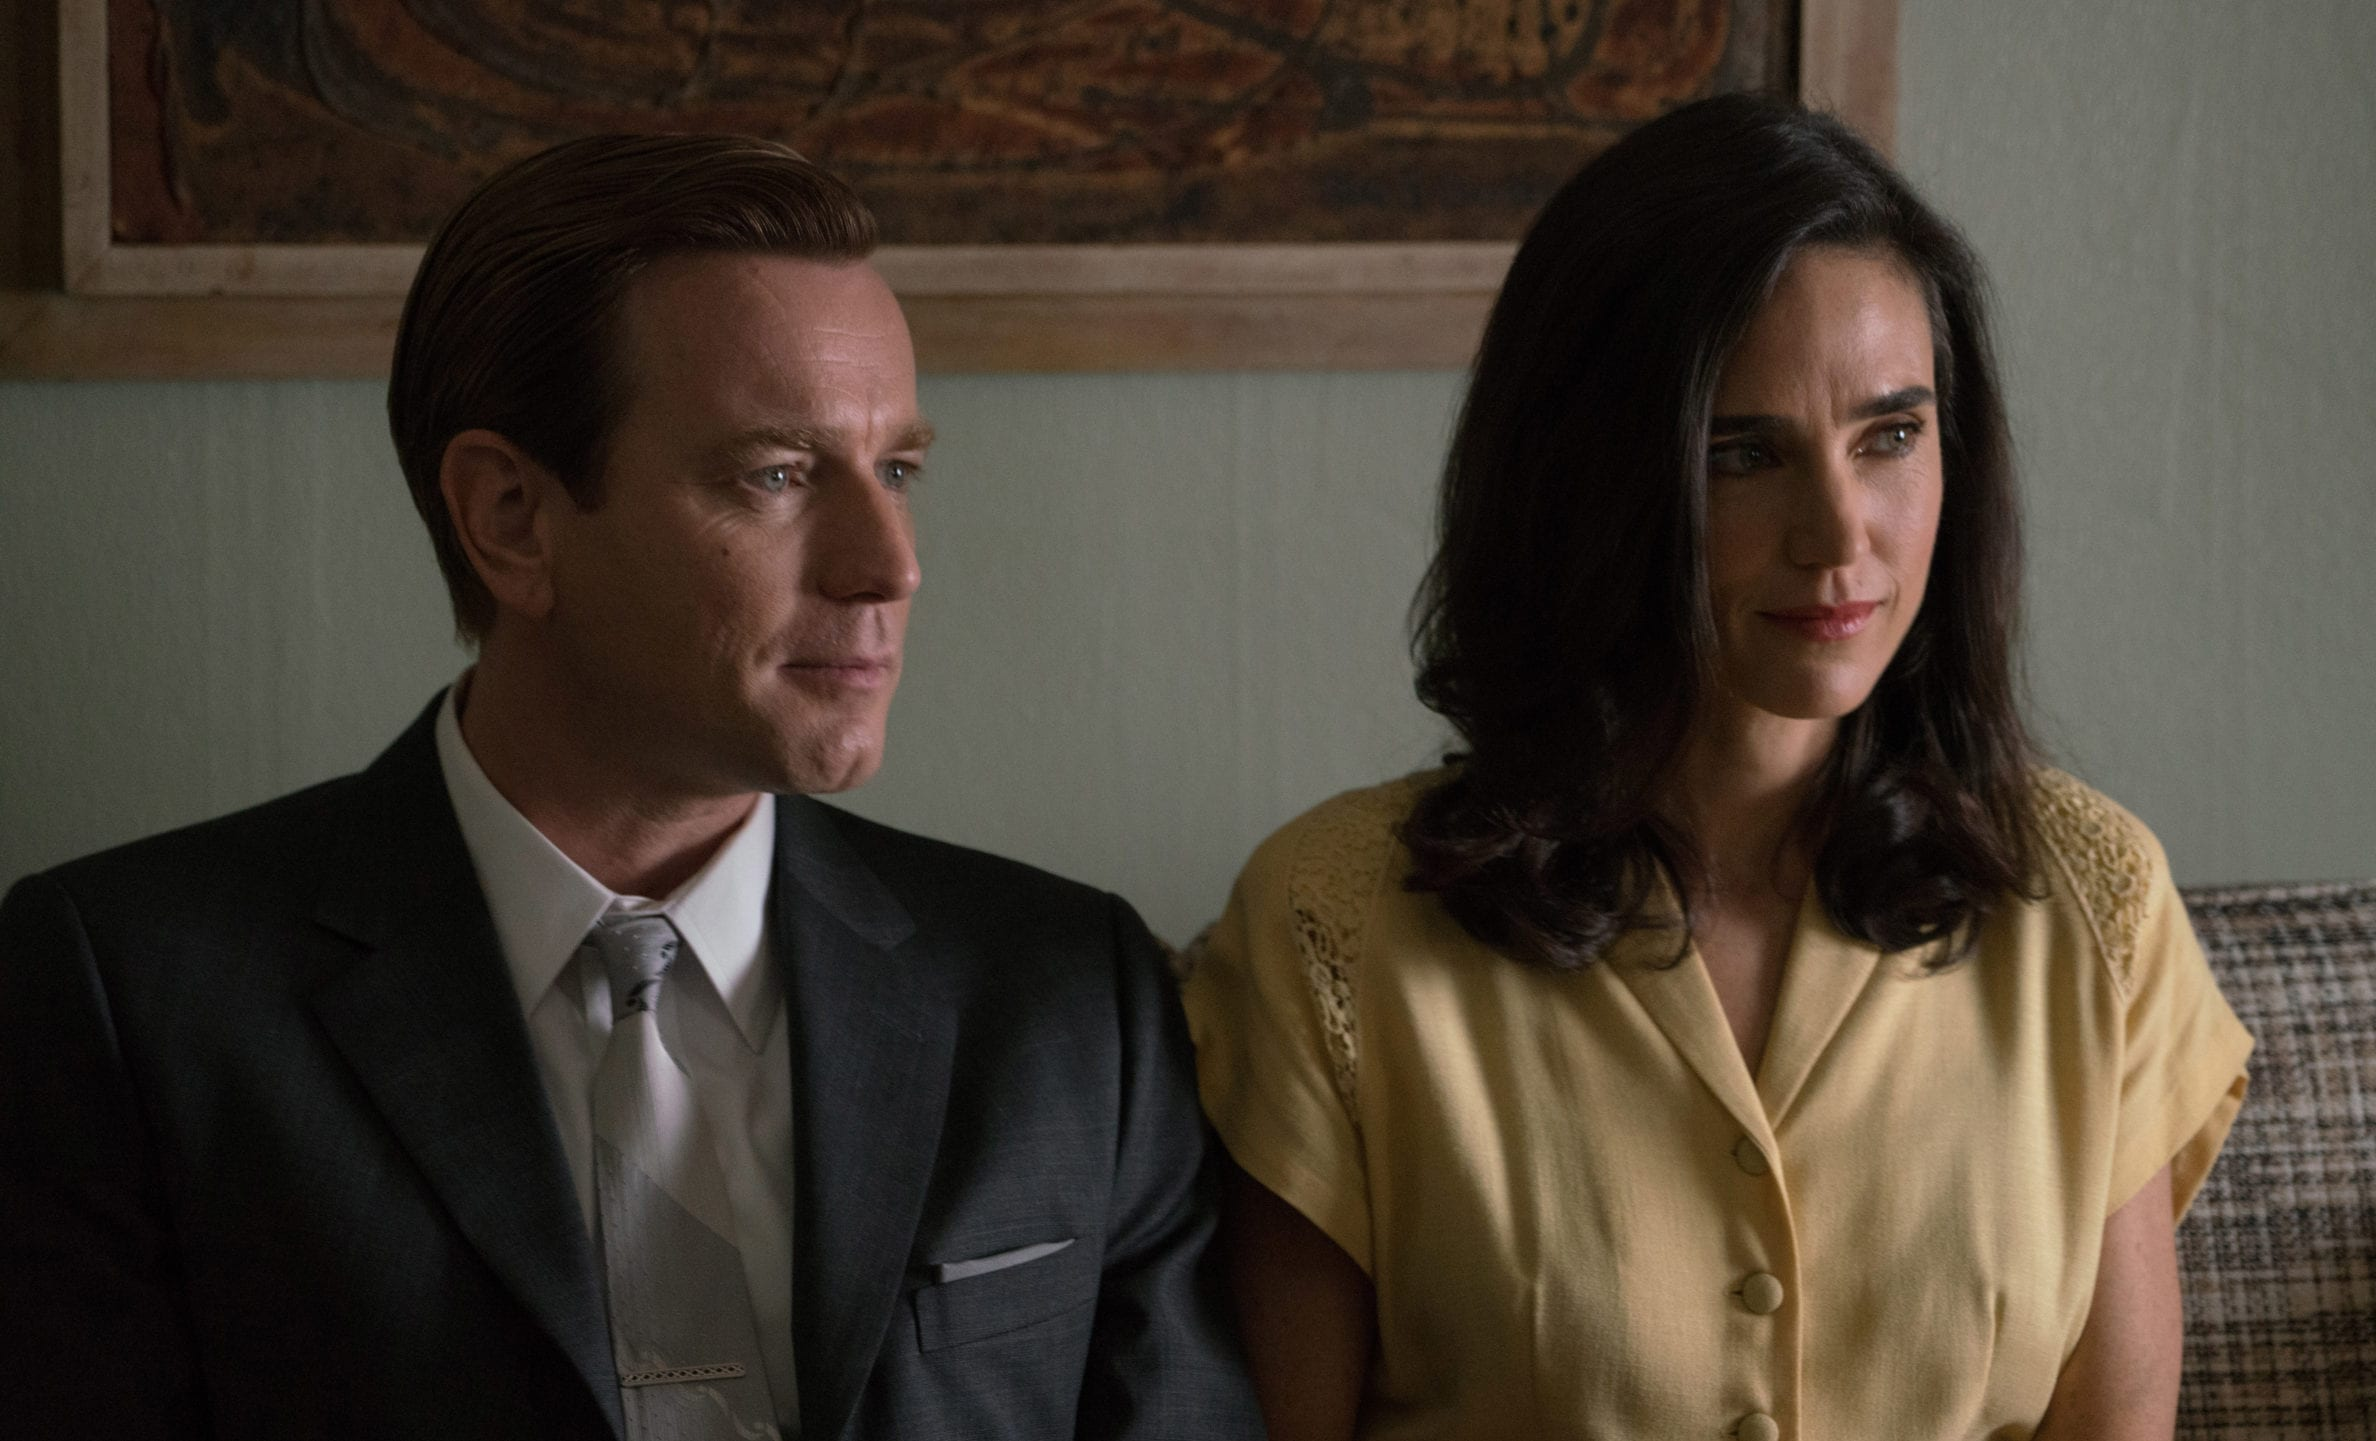 Electra-fying: 'American Pastoral' and a society gone mad